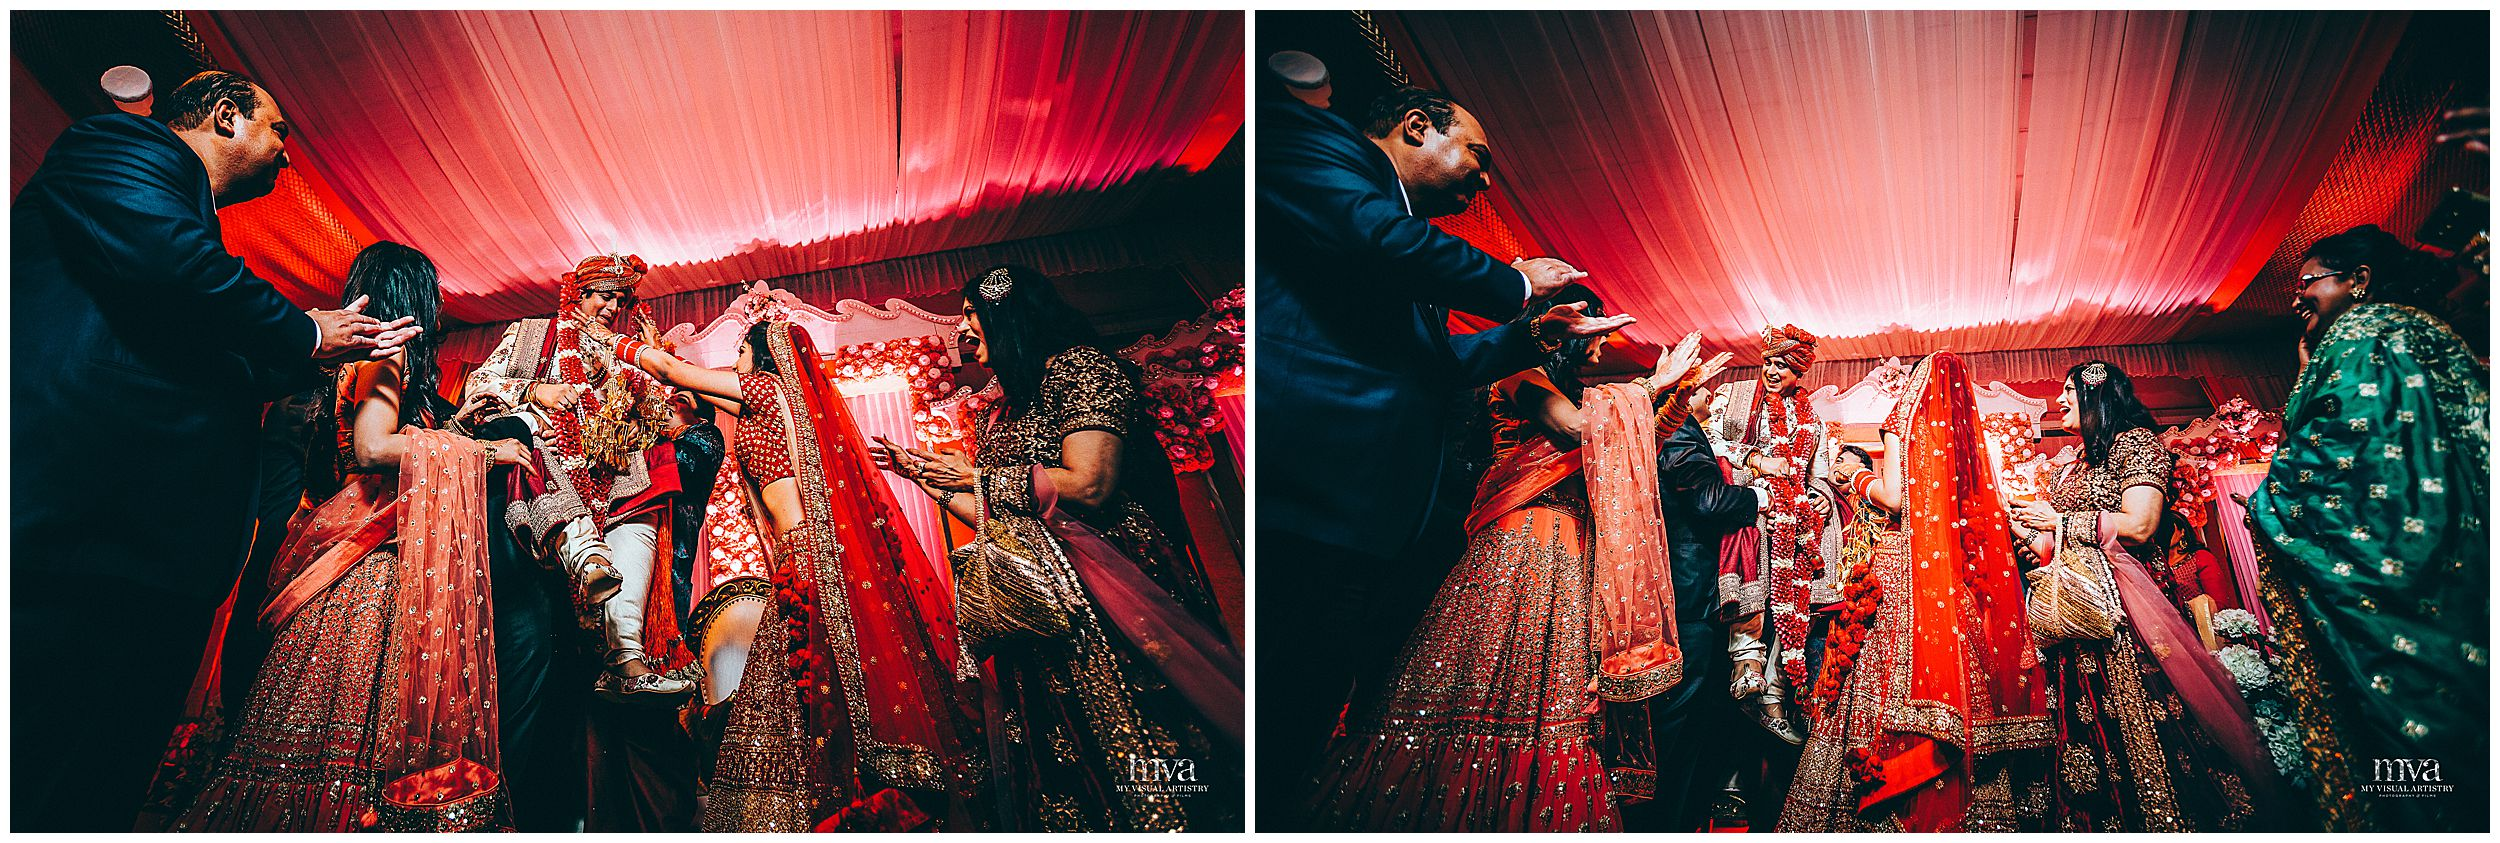 SIDDARTH_SAKSHI_MYVISUALARTISTRY_WEDDING_PHOTOGRAPHY_MVA_EROSHANGRILA_DELHI_0038.jpg